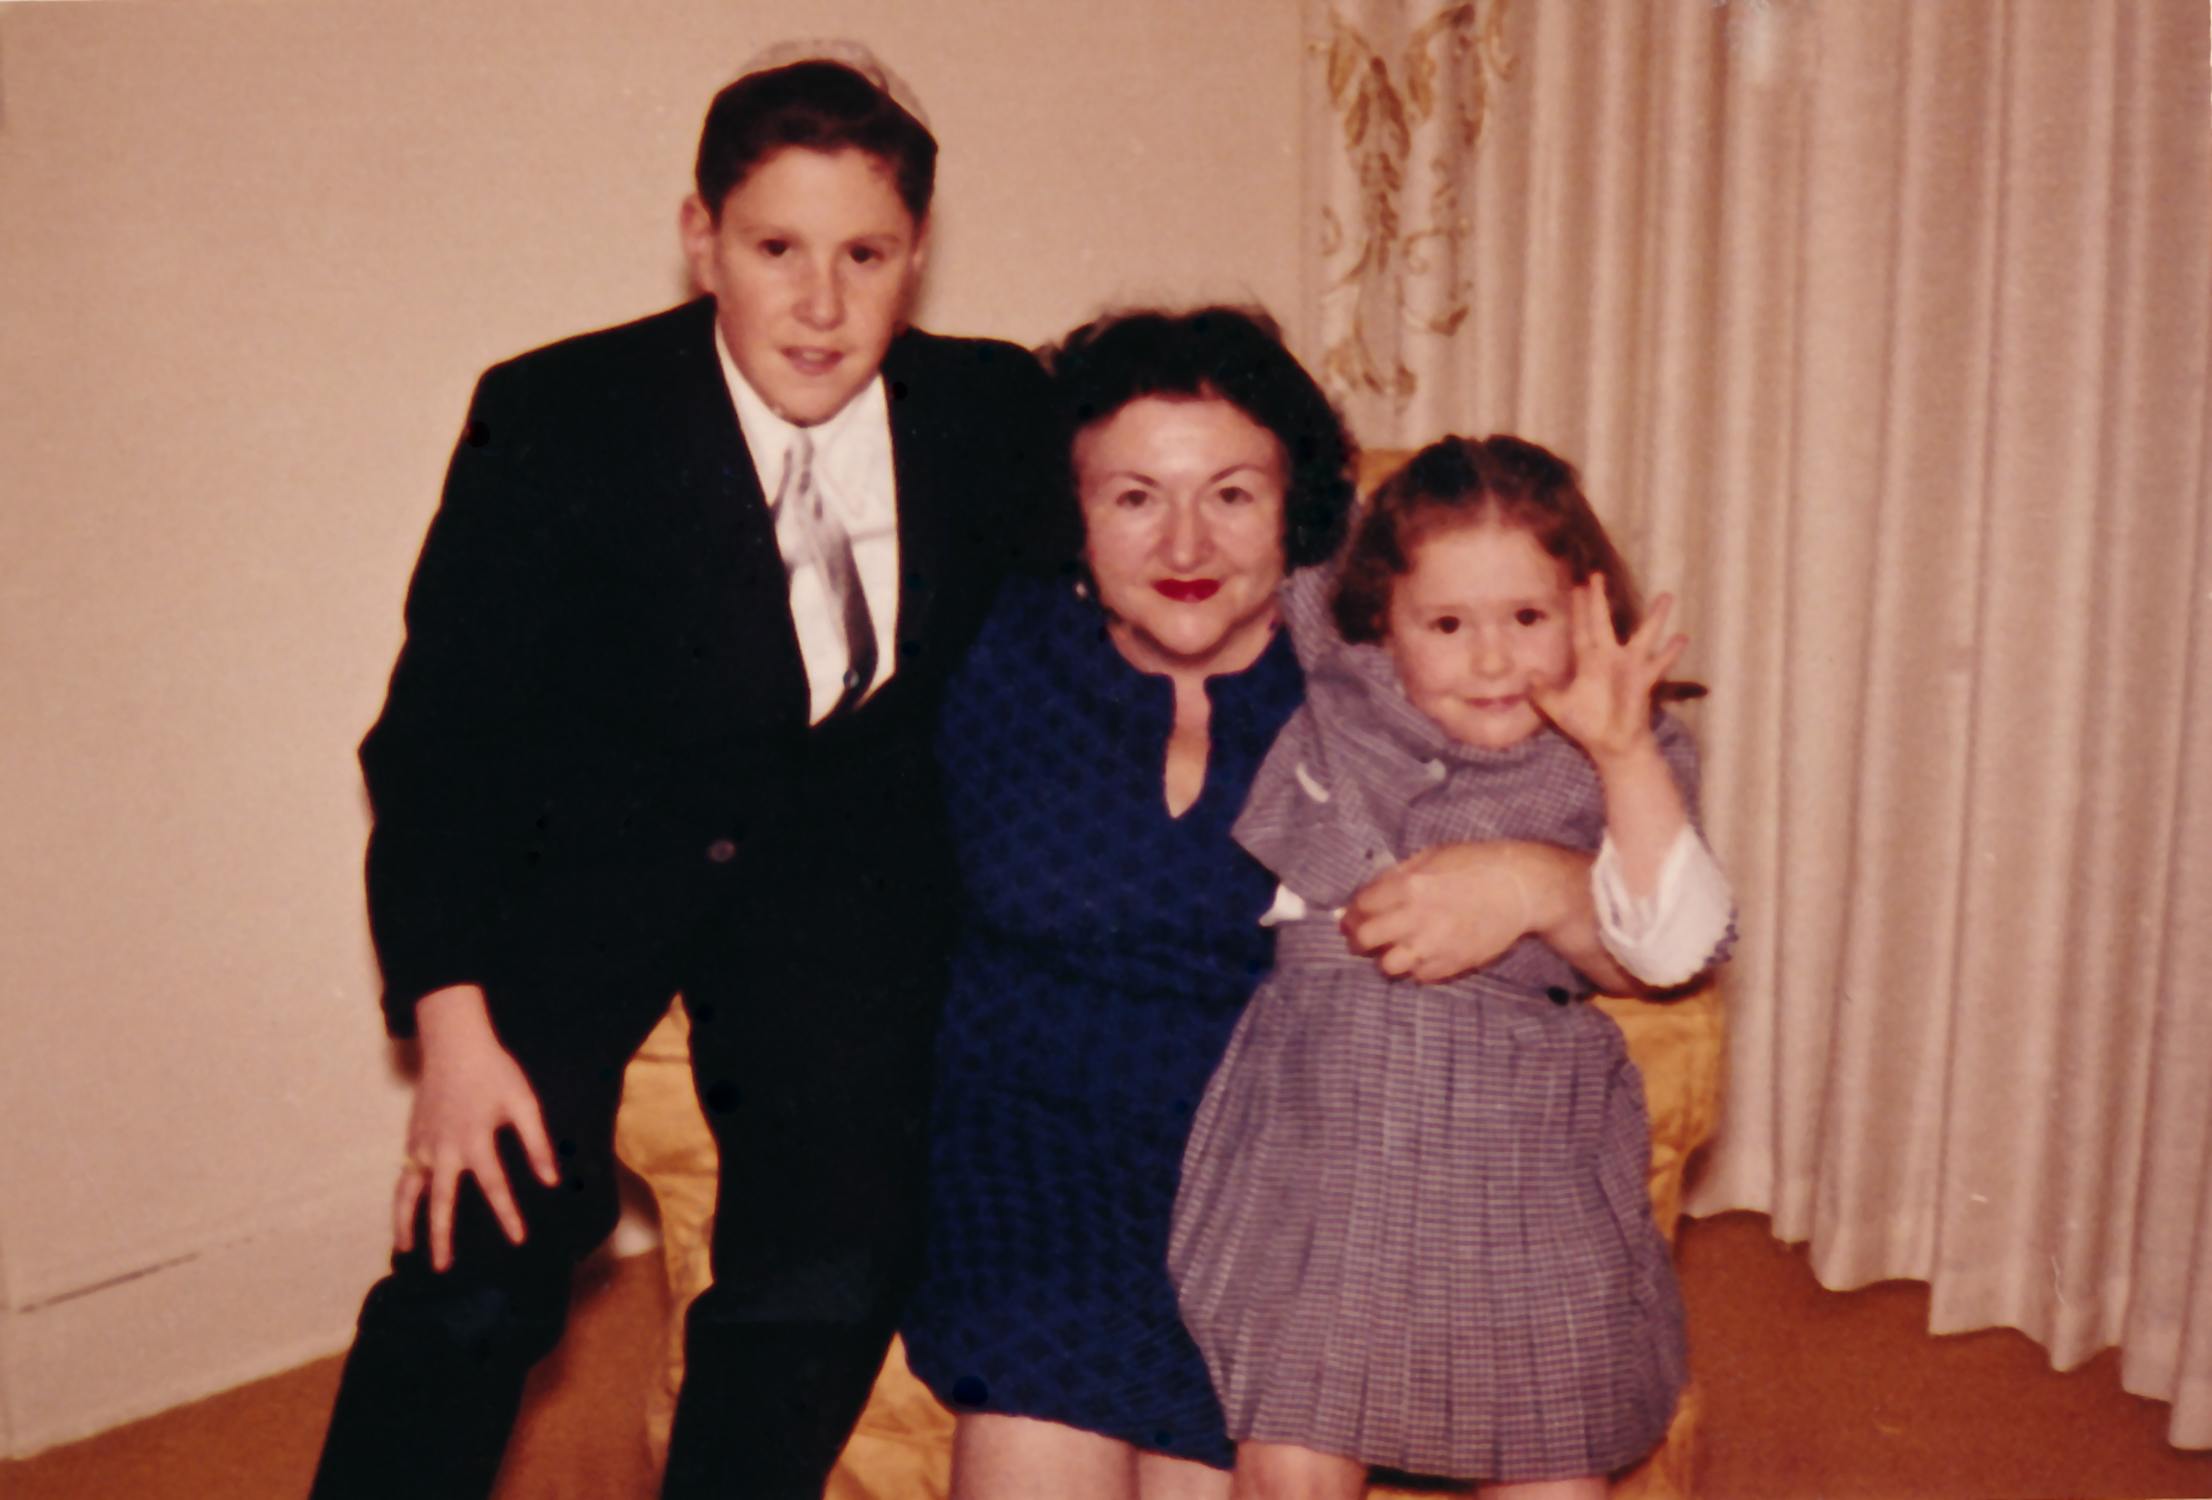 My Brother, Mother And I Before His Bar Mitzvah - Around 1961